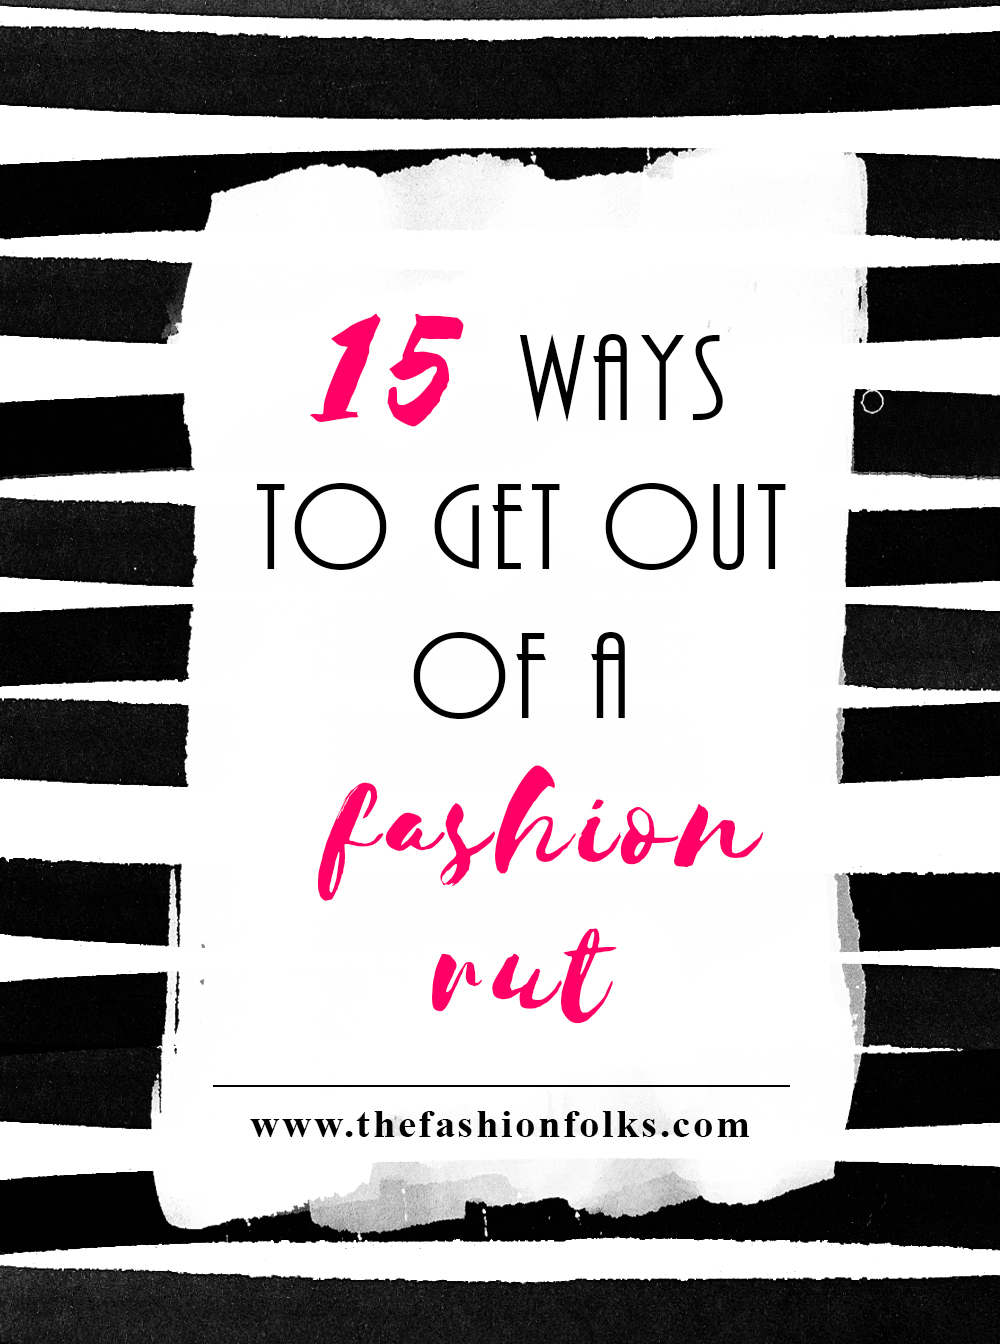 15 ways to get out of a fashion rut + idea to get inspiration and how to stay inspired | The Fashion Folks